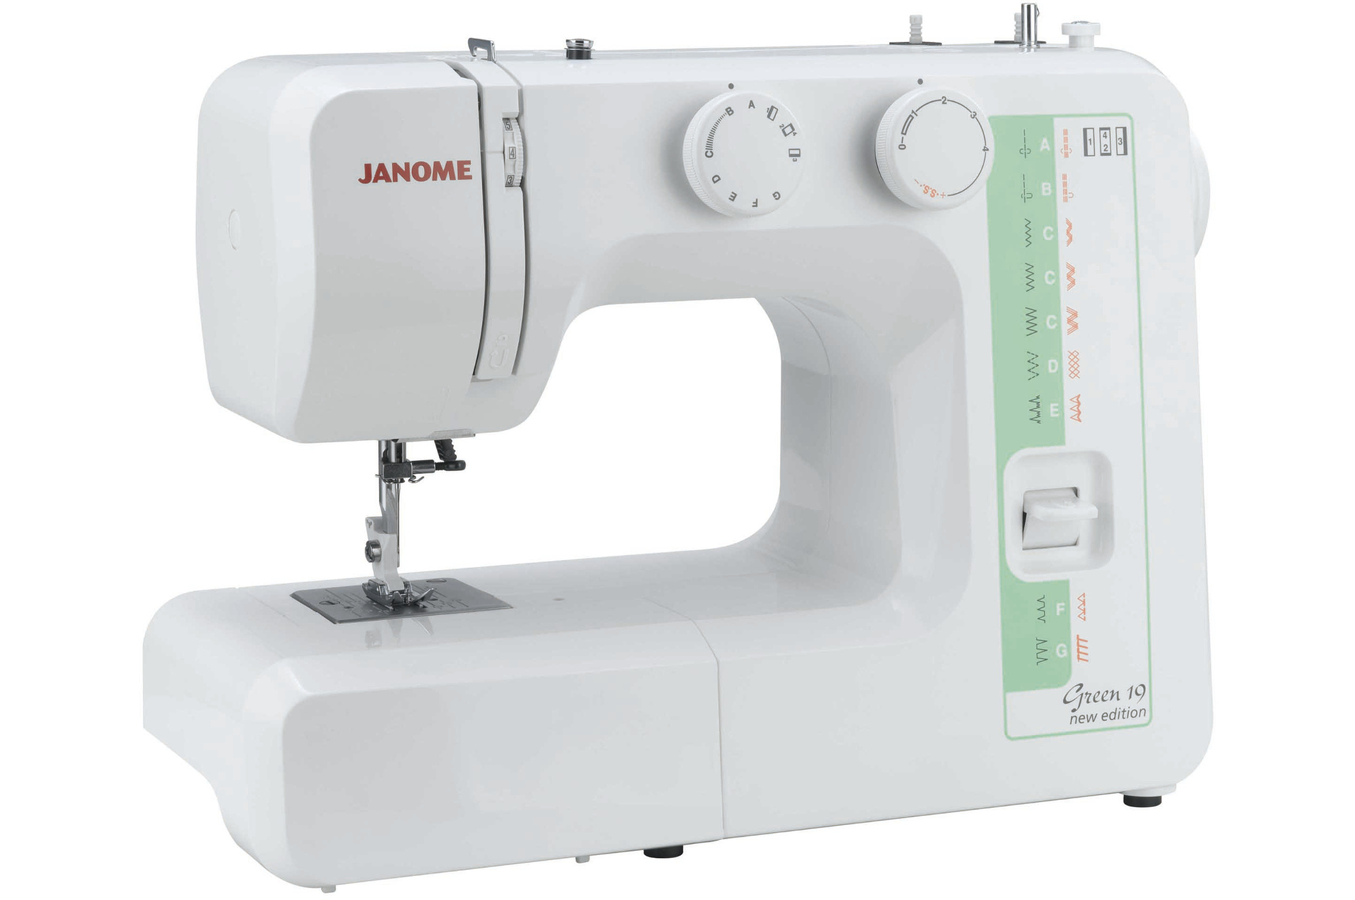 machine a coudre janome green 19 new edition 4030982 darty